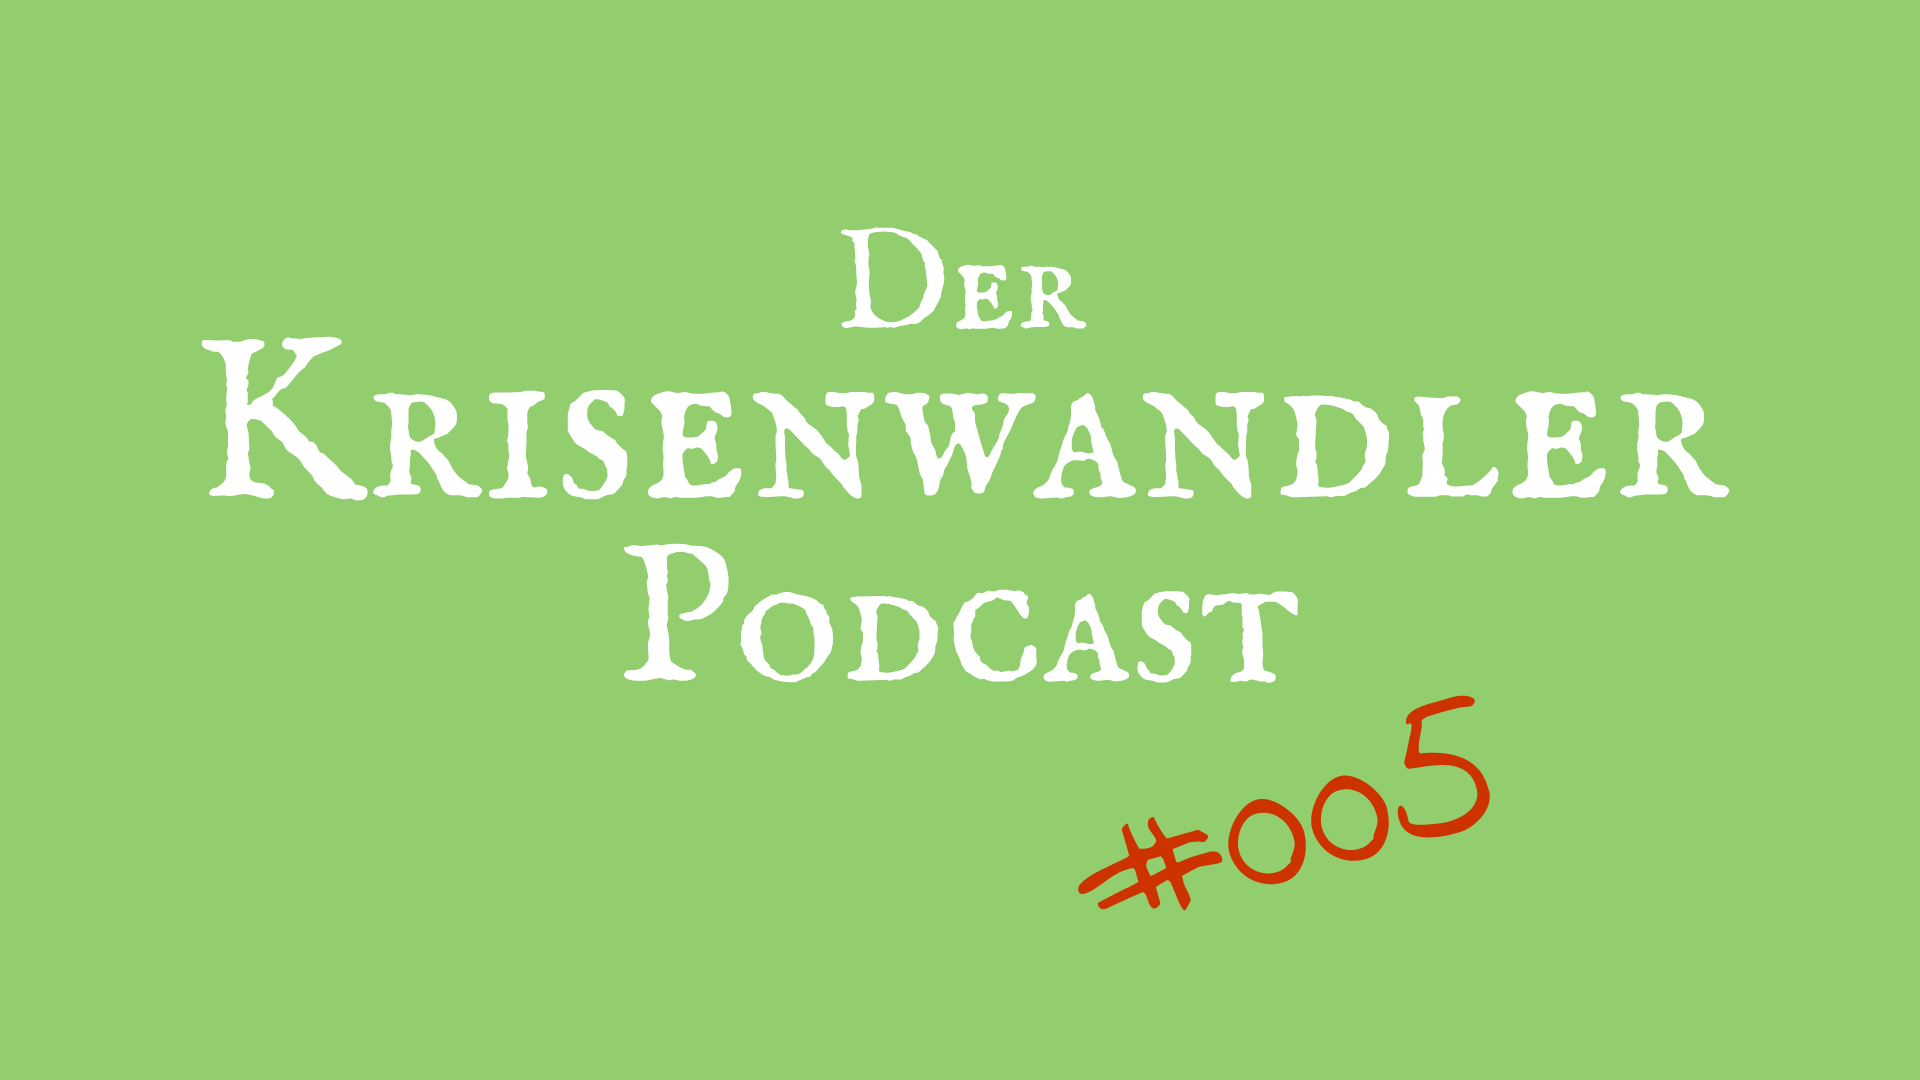 Podcast Krisenwandler 005